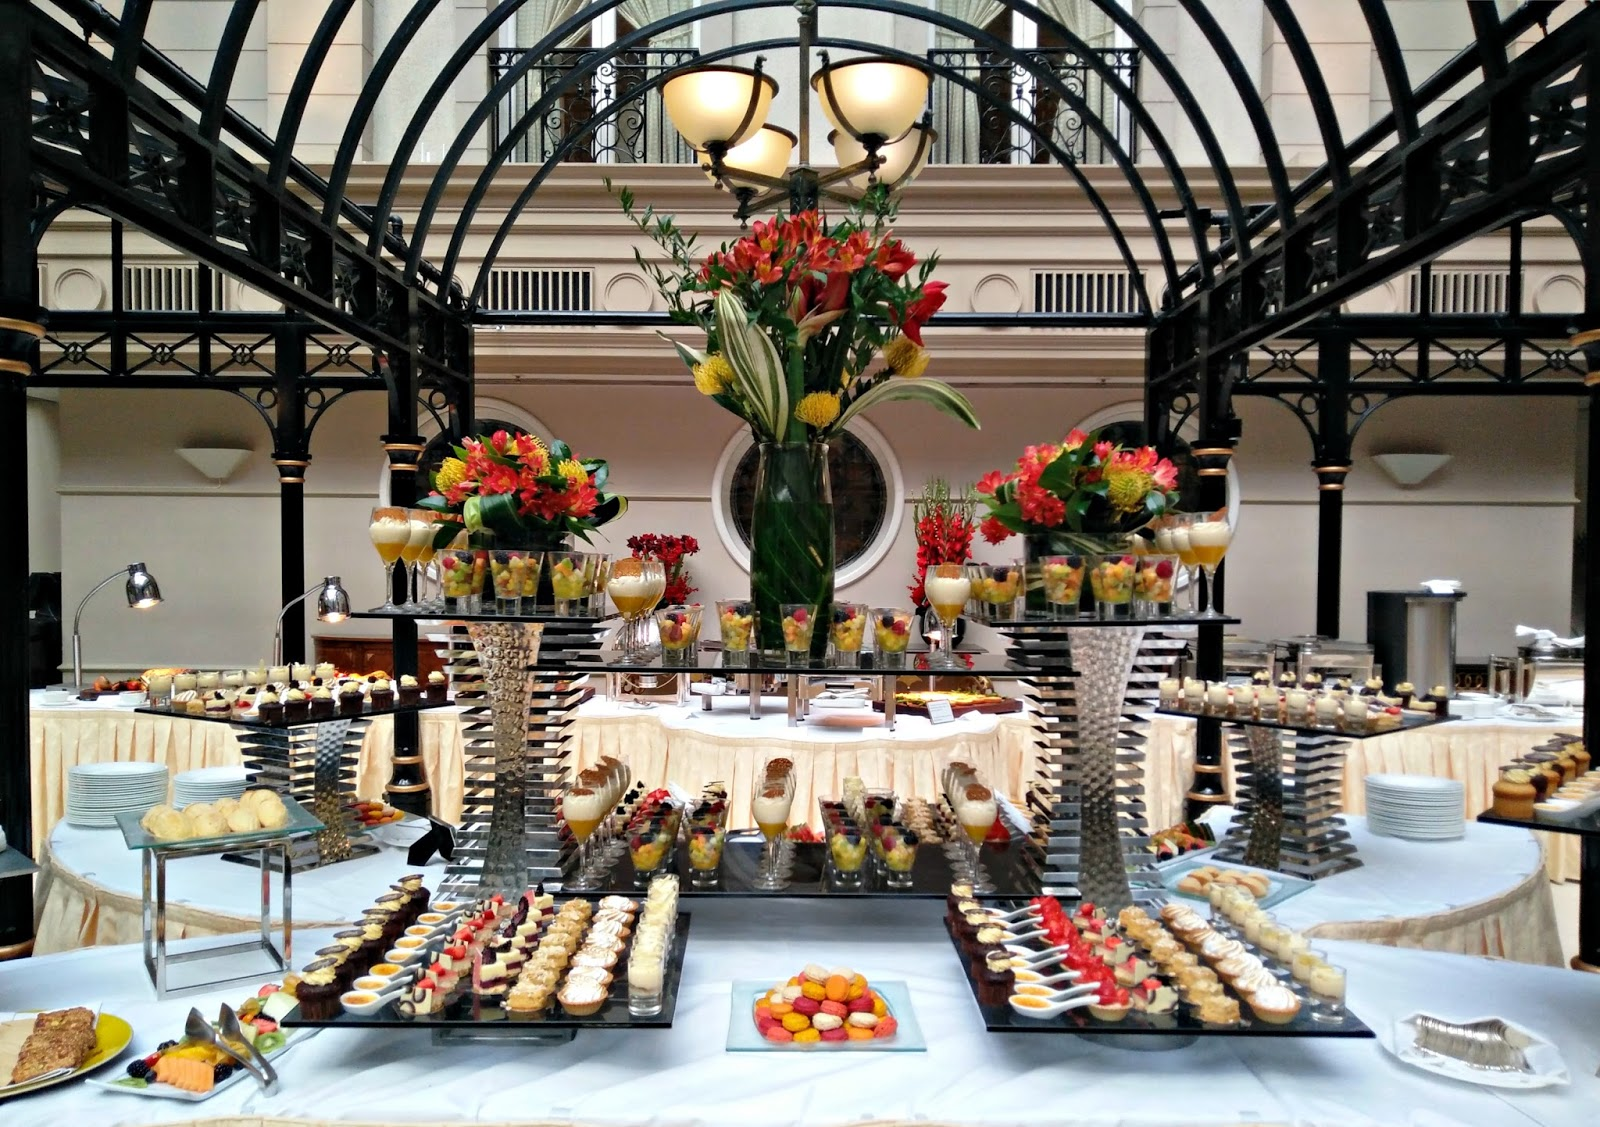 Champagne Sunday Brunch at the Landmark Hotel